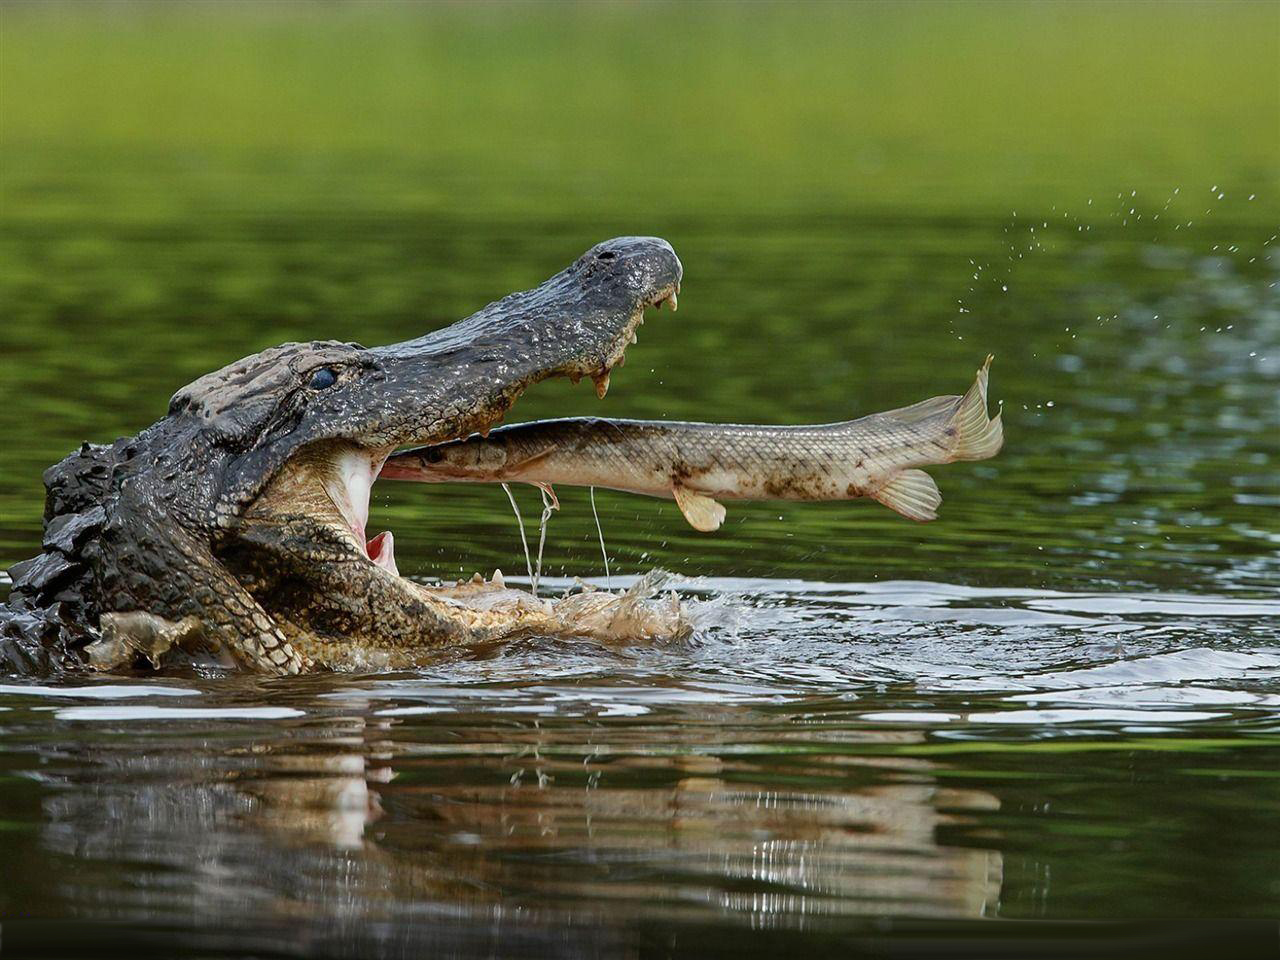 American Alligator, animal wallpapers